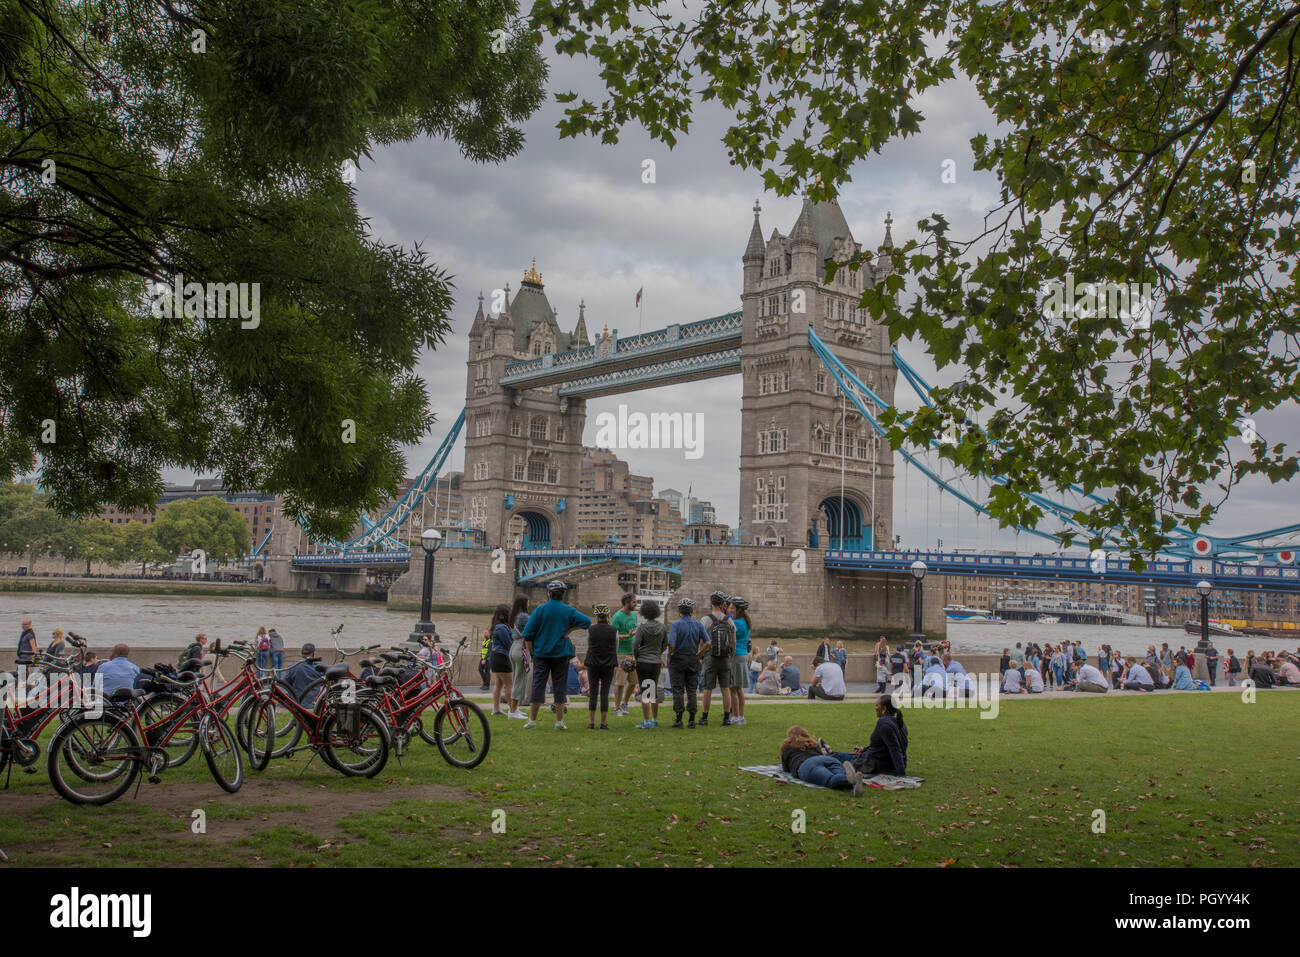 a group of oriental tourists on a guided cycle tour of london next to tower bridge at more london riverside. - Stock Image